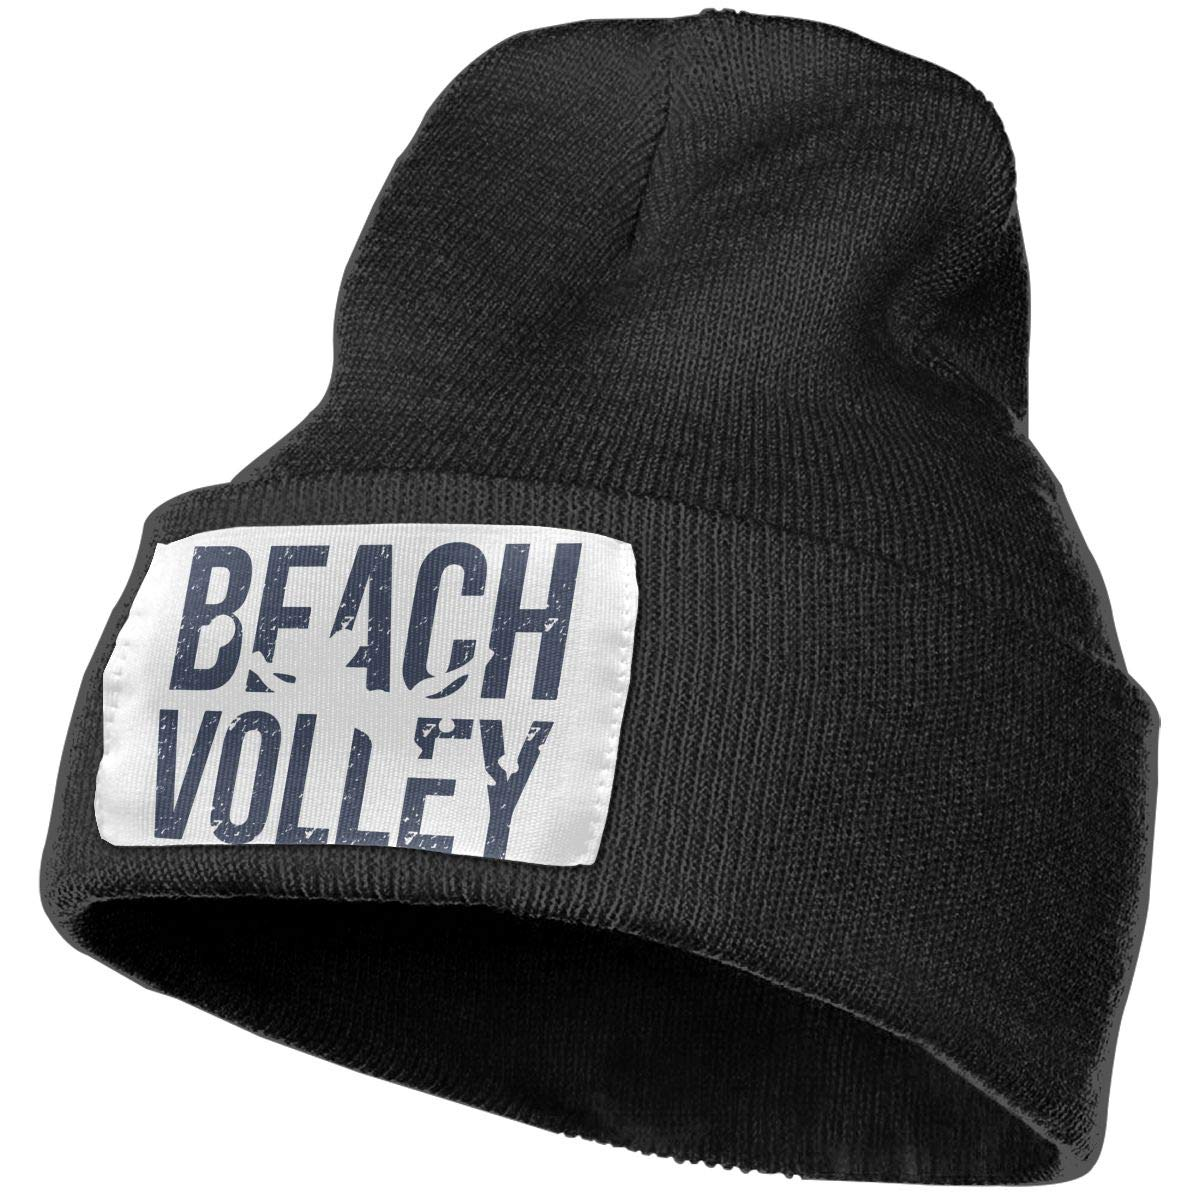 Adults Beach Volley Elastic Knitted Beanie Cap Winter Warm Skull Hats